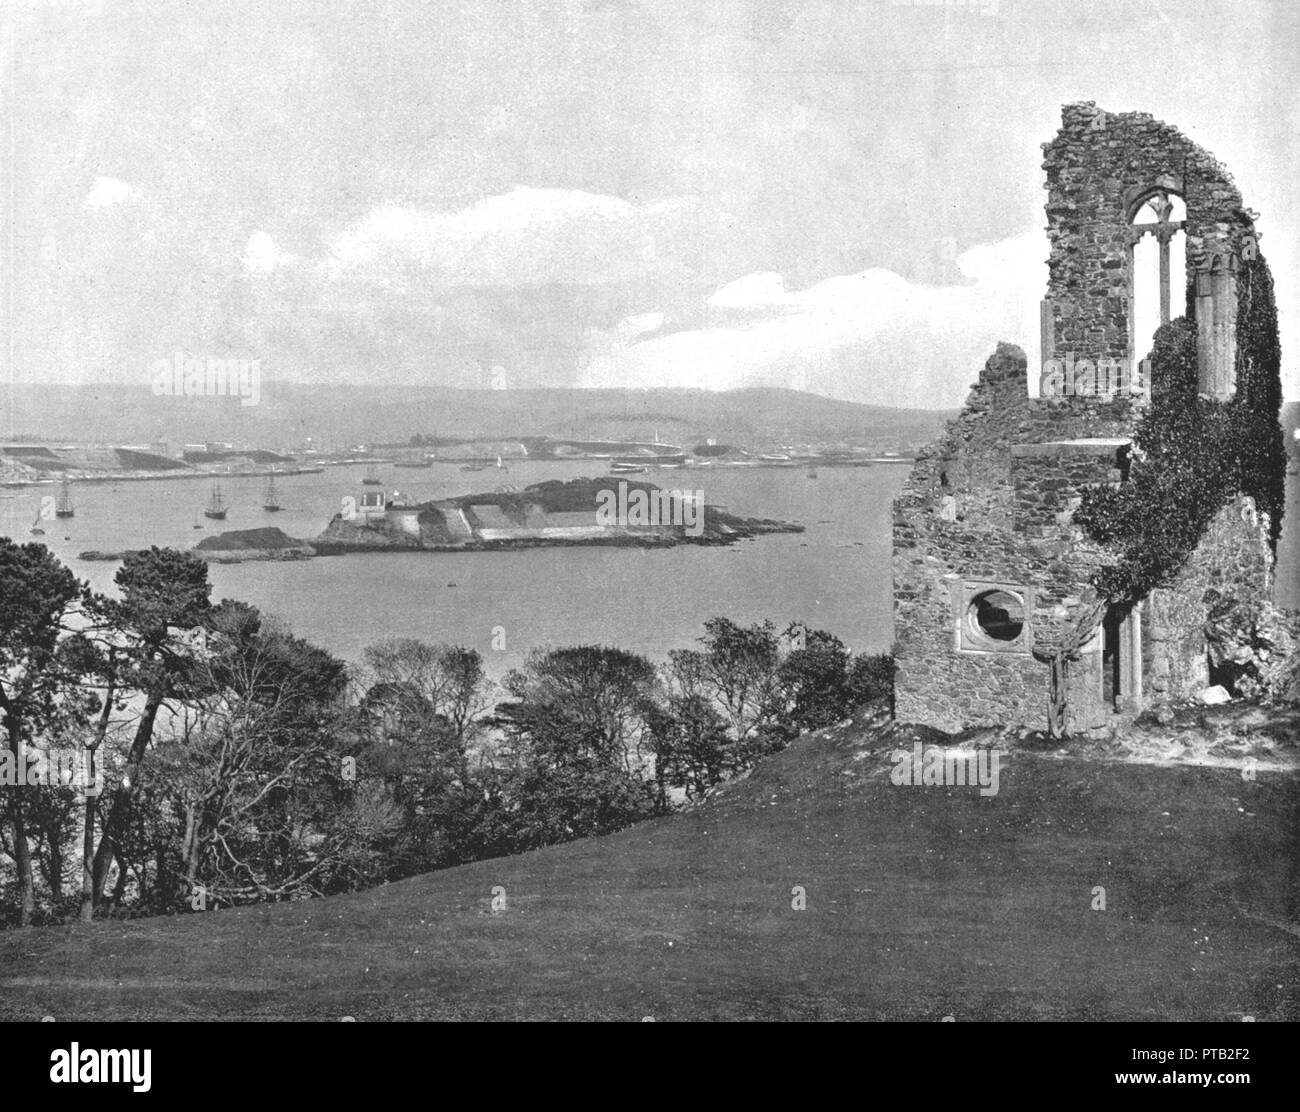 Mount Edgcumbe Folly, Plymouth, Cornwall, 1894. The folly overlooking Plymouth Sound was built as a deliberately ruined stone tower in 1747. From Beautiful Britain; views of our stately homes. [The Werner Company of Chicago, 1894] - Stock Image